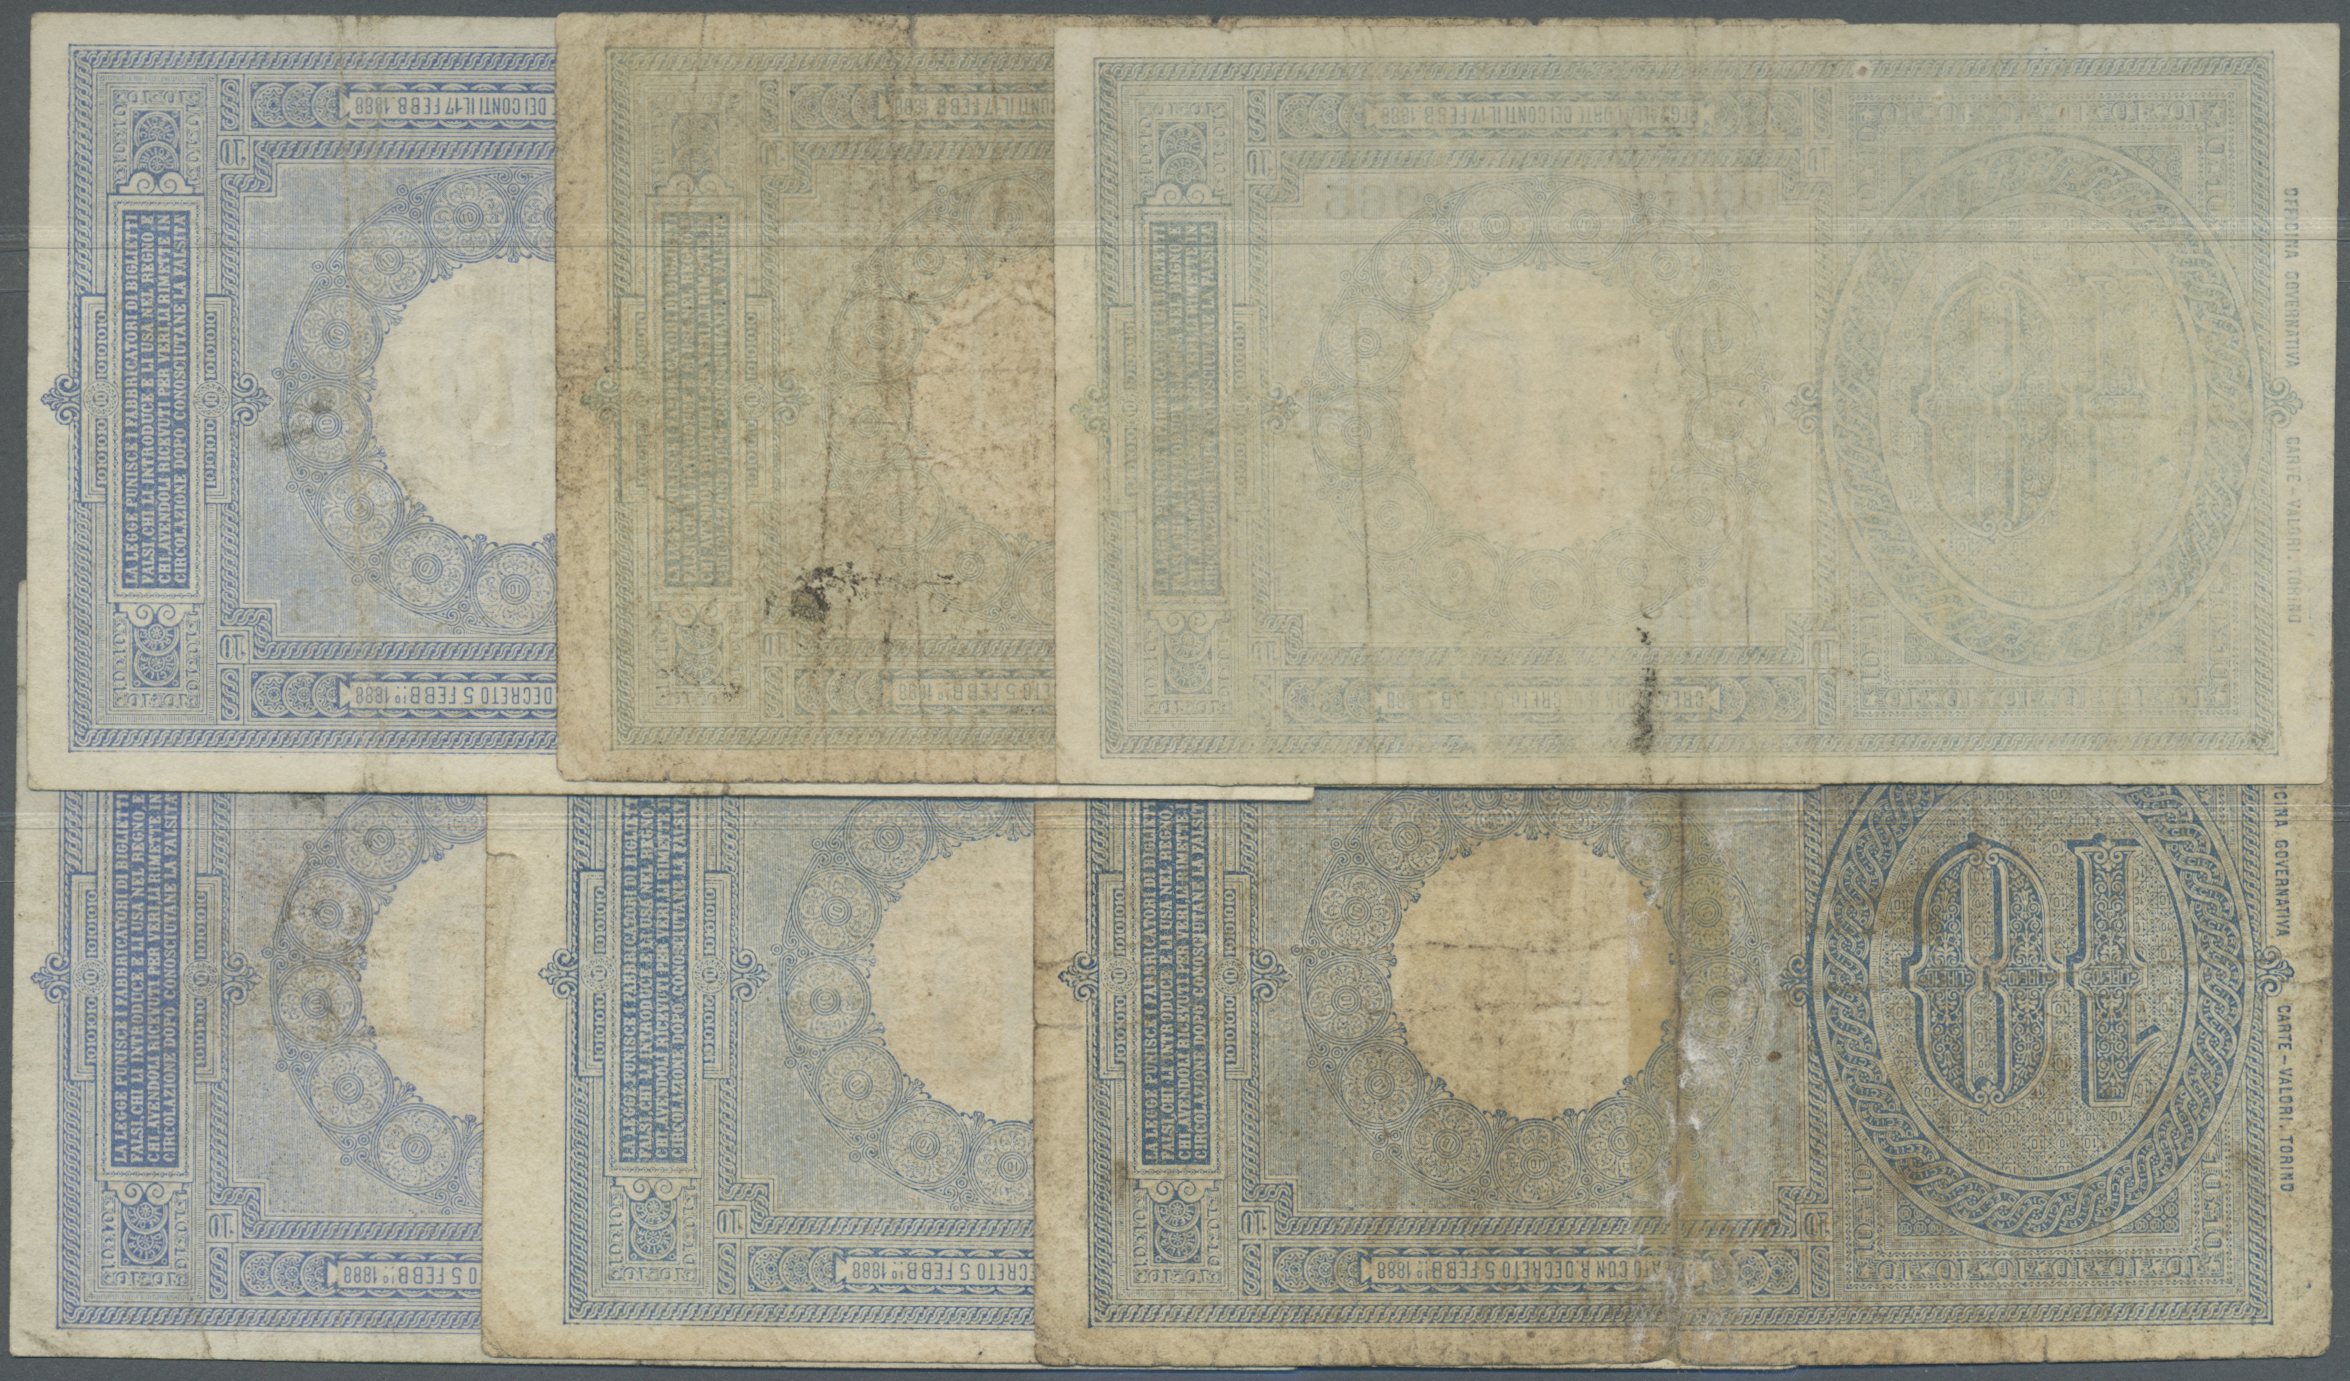 Lot 00452 - Italy / Italien | Banknoten  -  Auktionshaus Christoph Gärtner GmbH & Co. KG Sale #48 The Banknotes